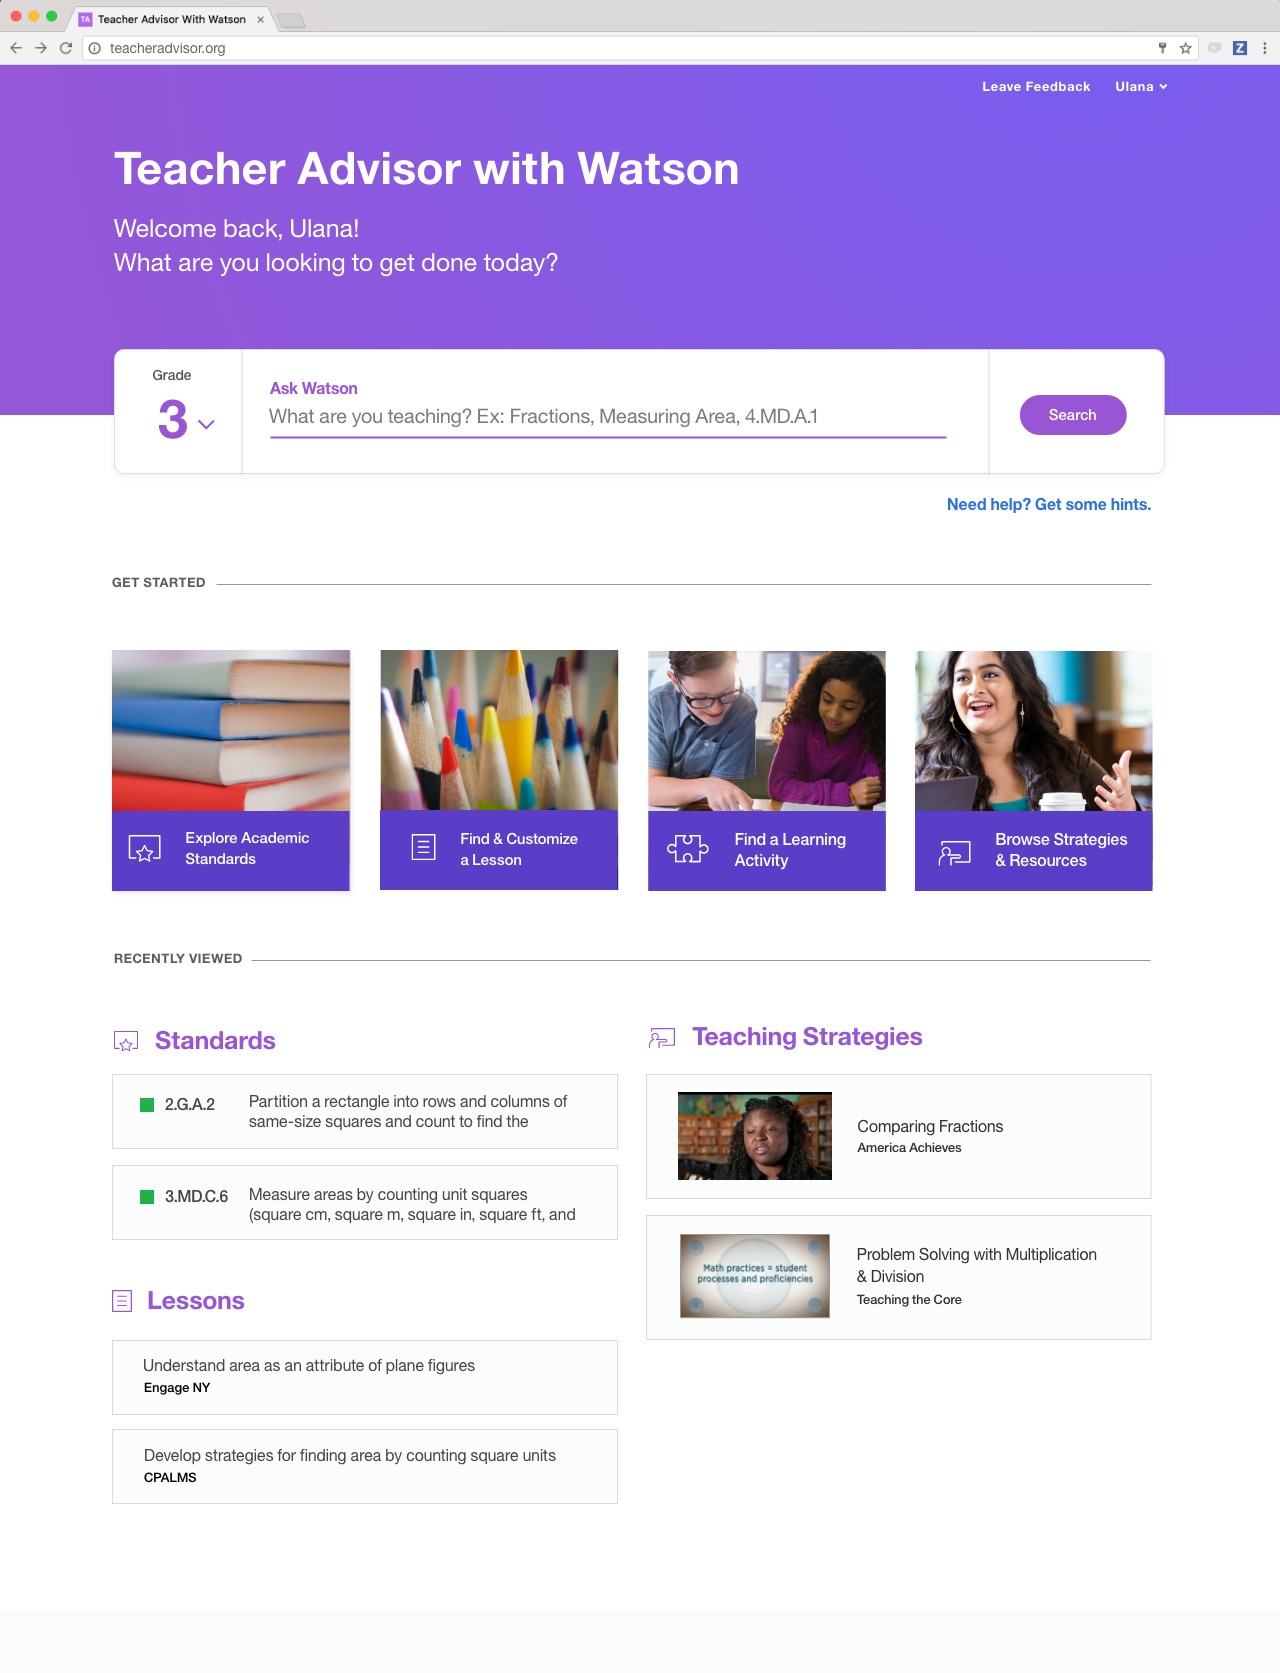 Personalized Content - Teacher Advisor is built with help from a coalition of current and former teachers. Everything in our tool is built to enable teachers to quickly access the materials they value in a convenient, prioritized and individually resonant way.